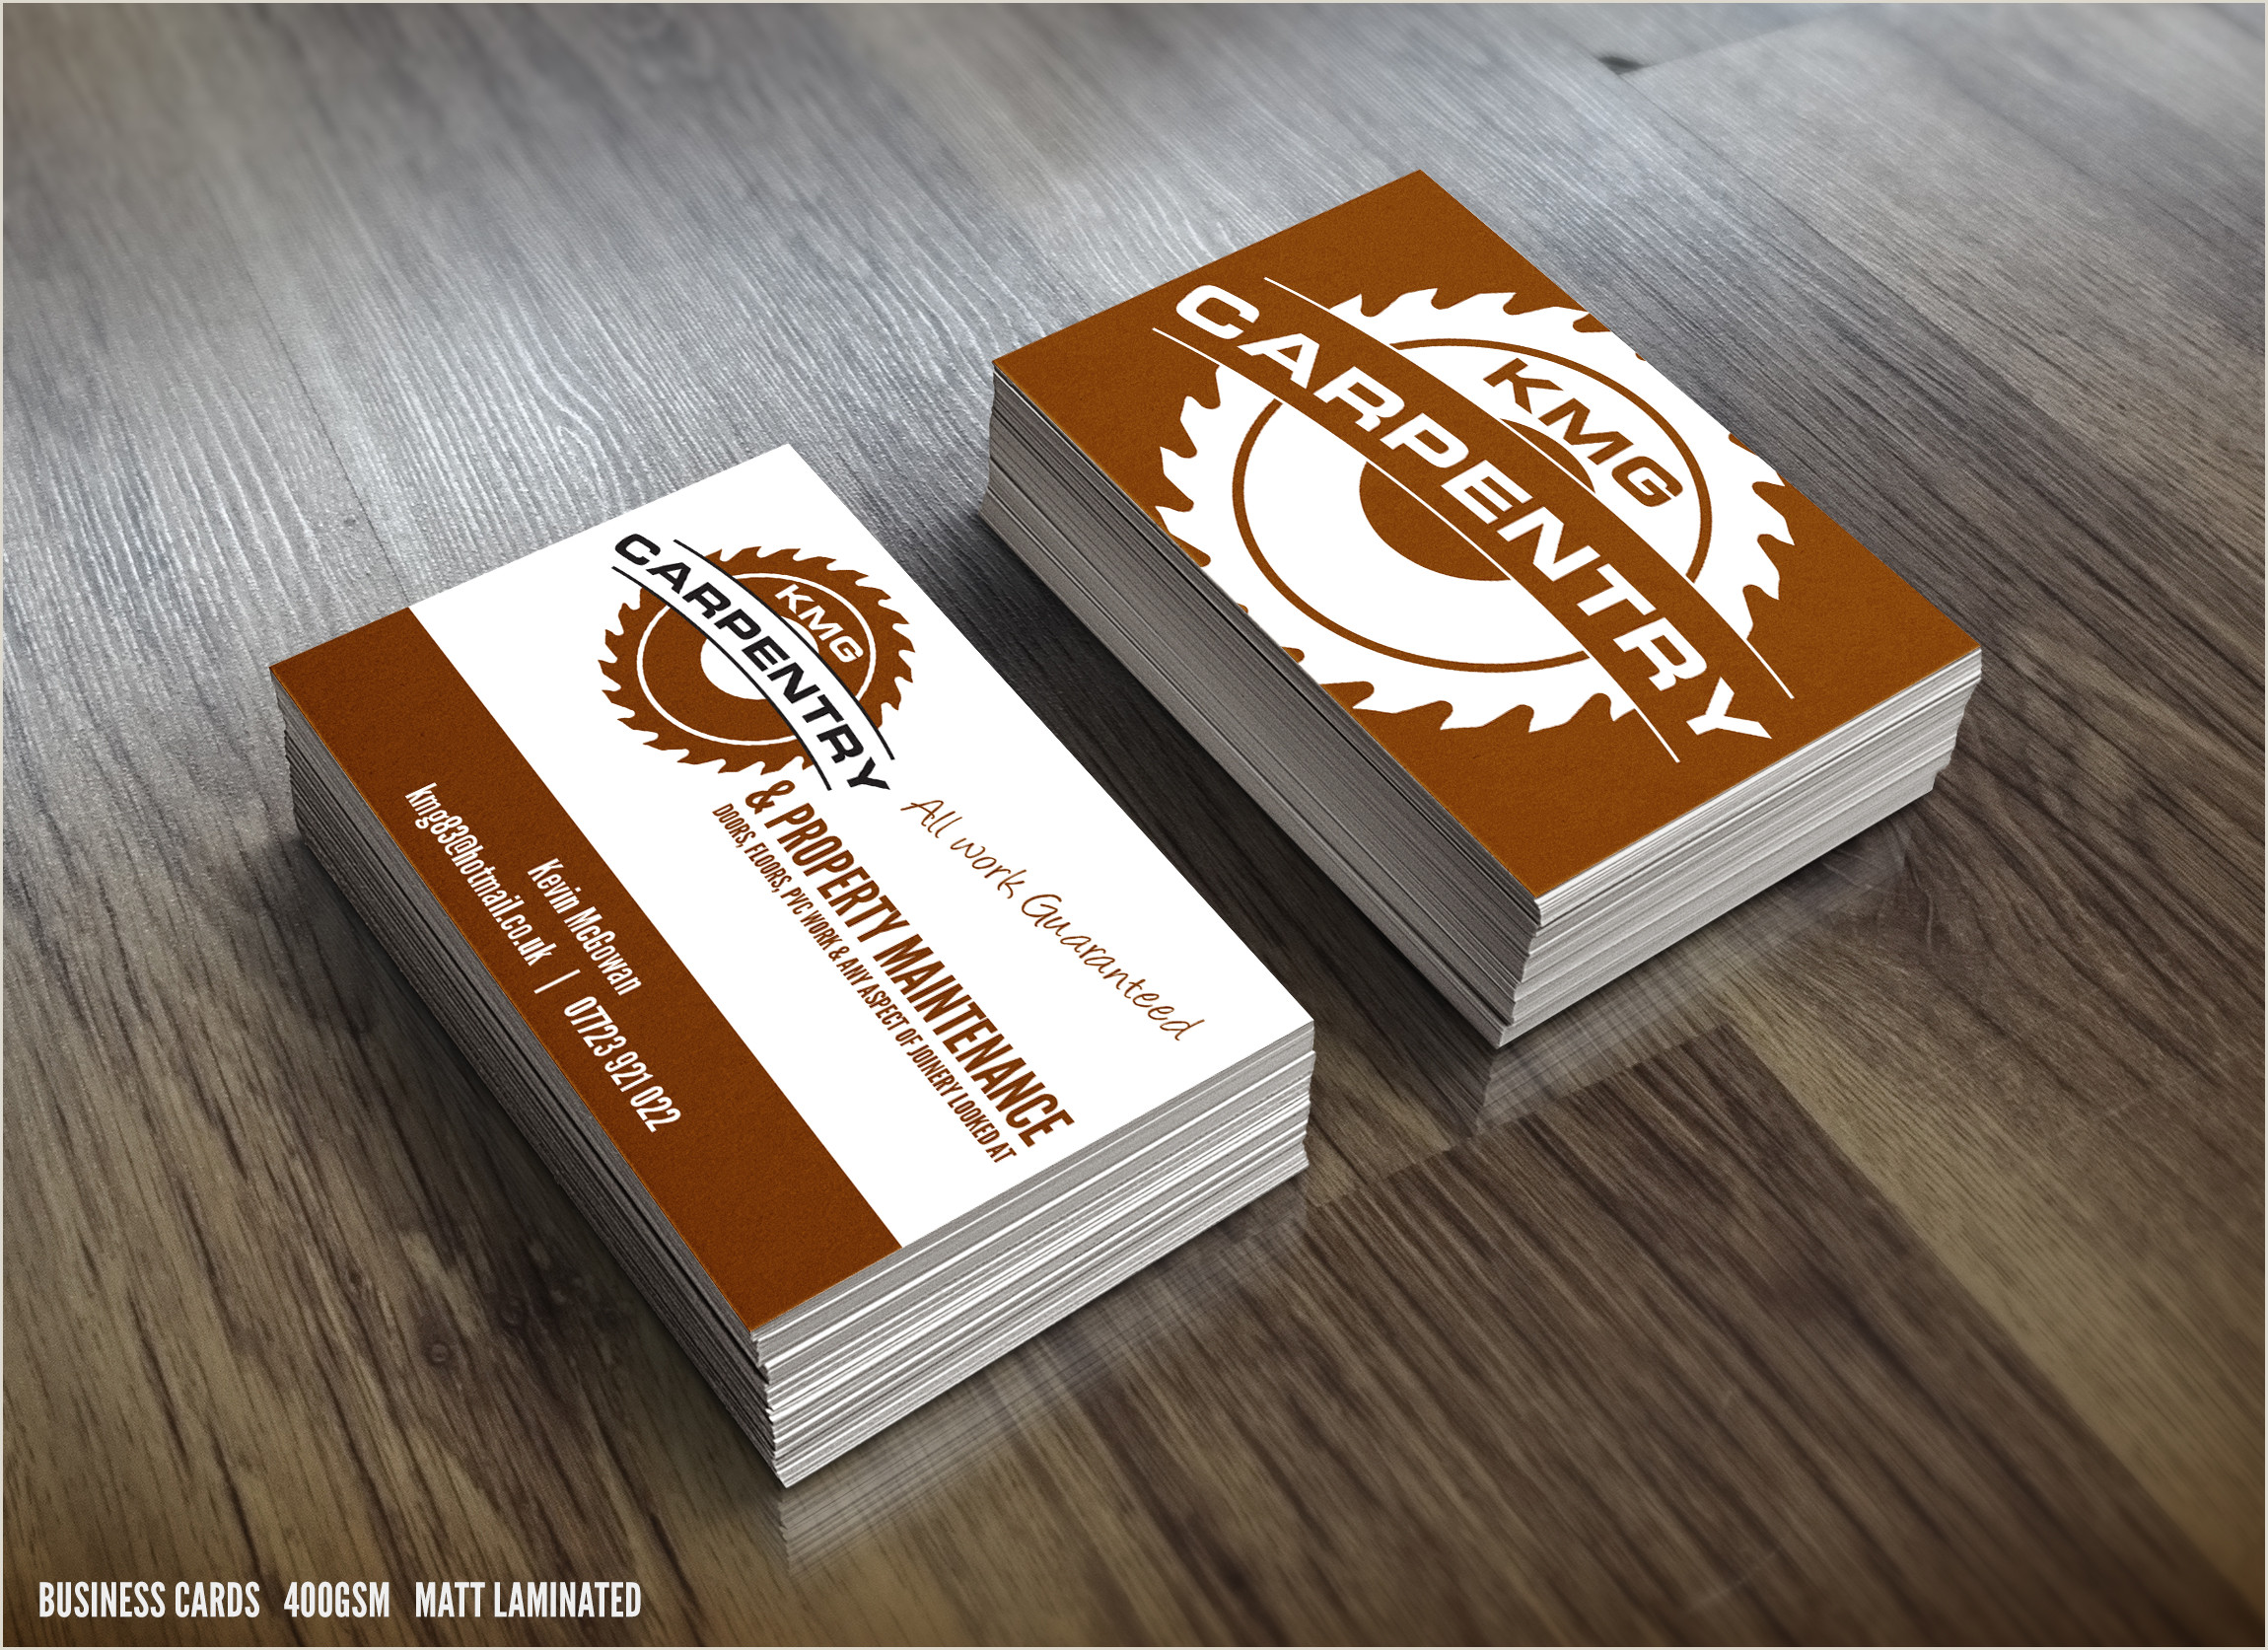 Awesome Unique Handyman Business Cards 20 Elegant Handyman Logos For Business Cards